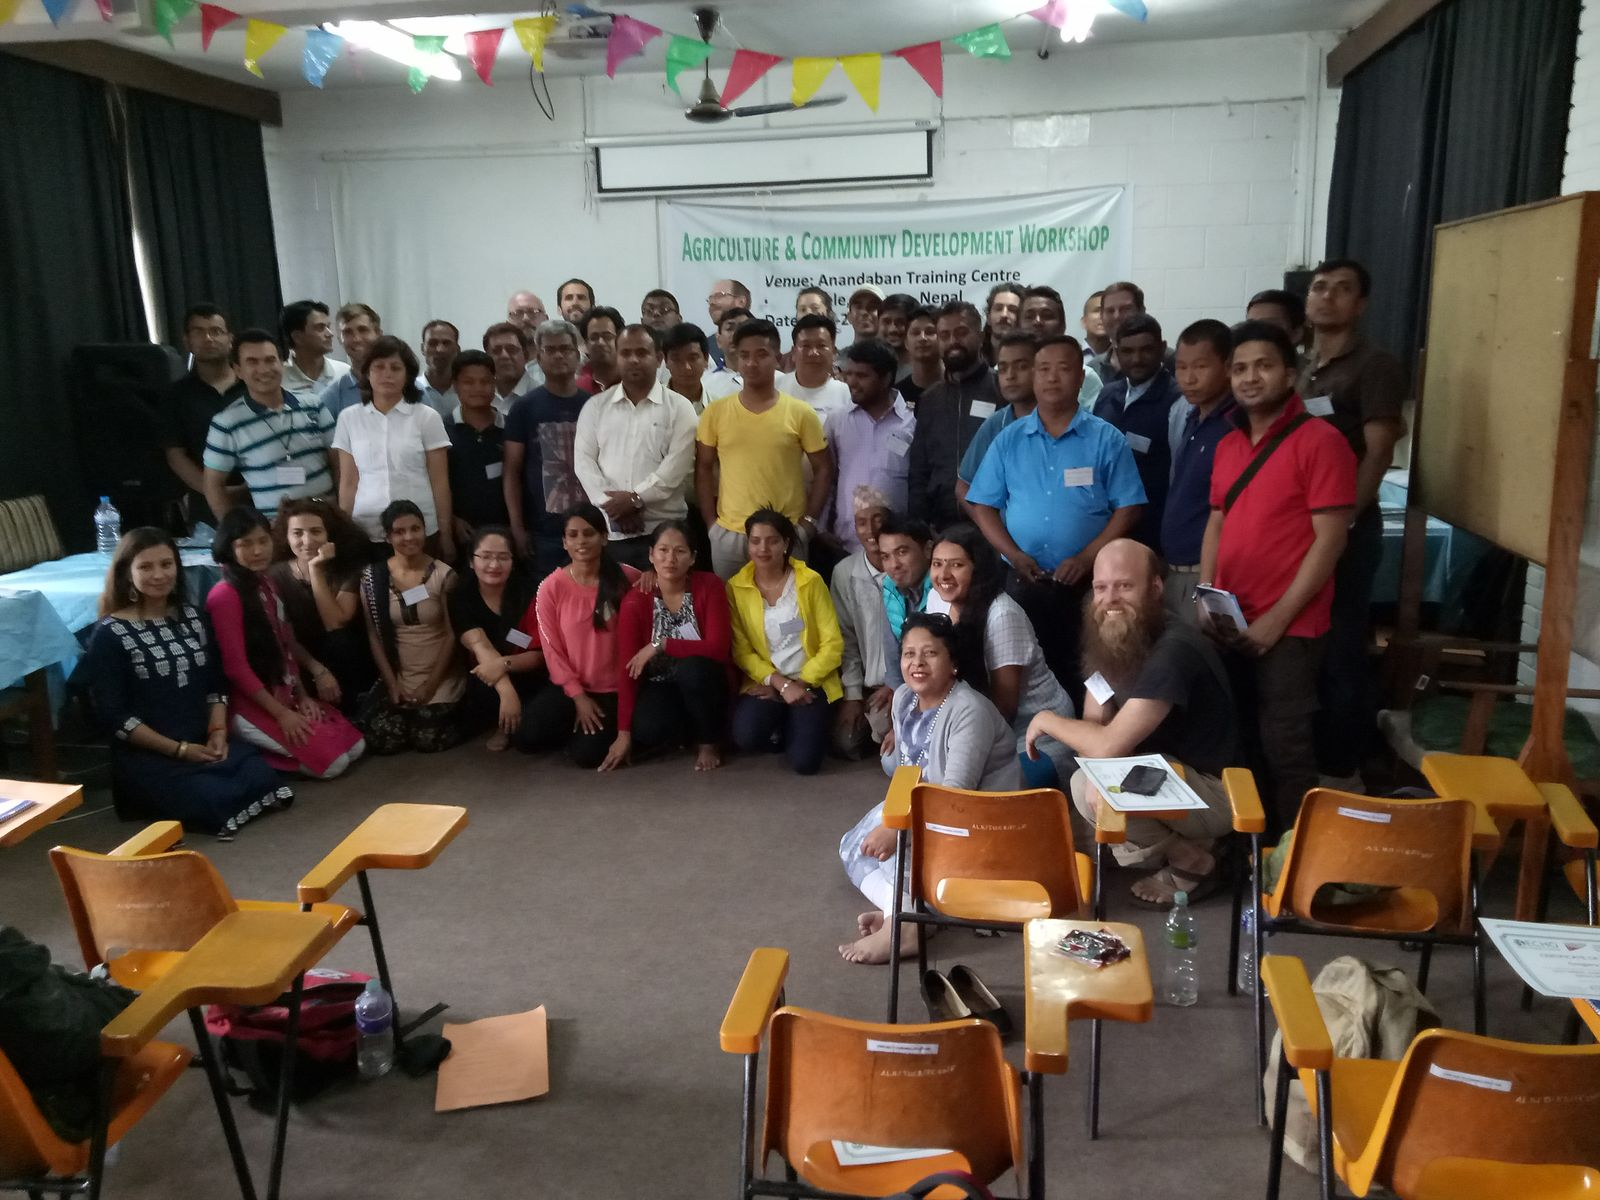 Nepal agriculture and community development workshop 2017 group photo lg